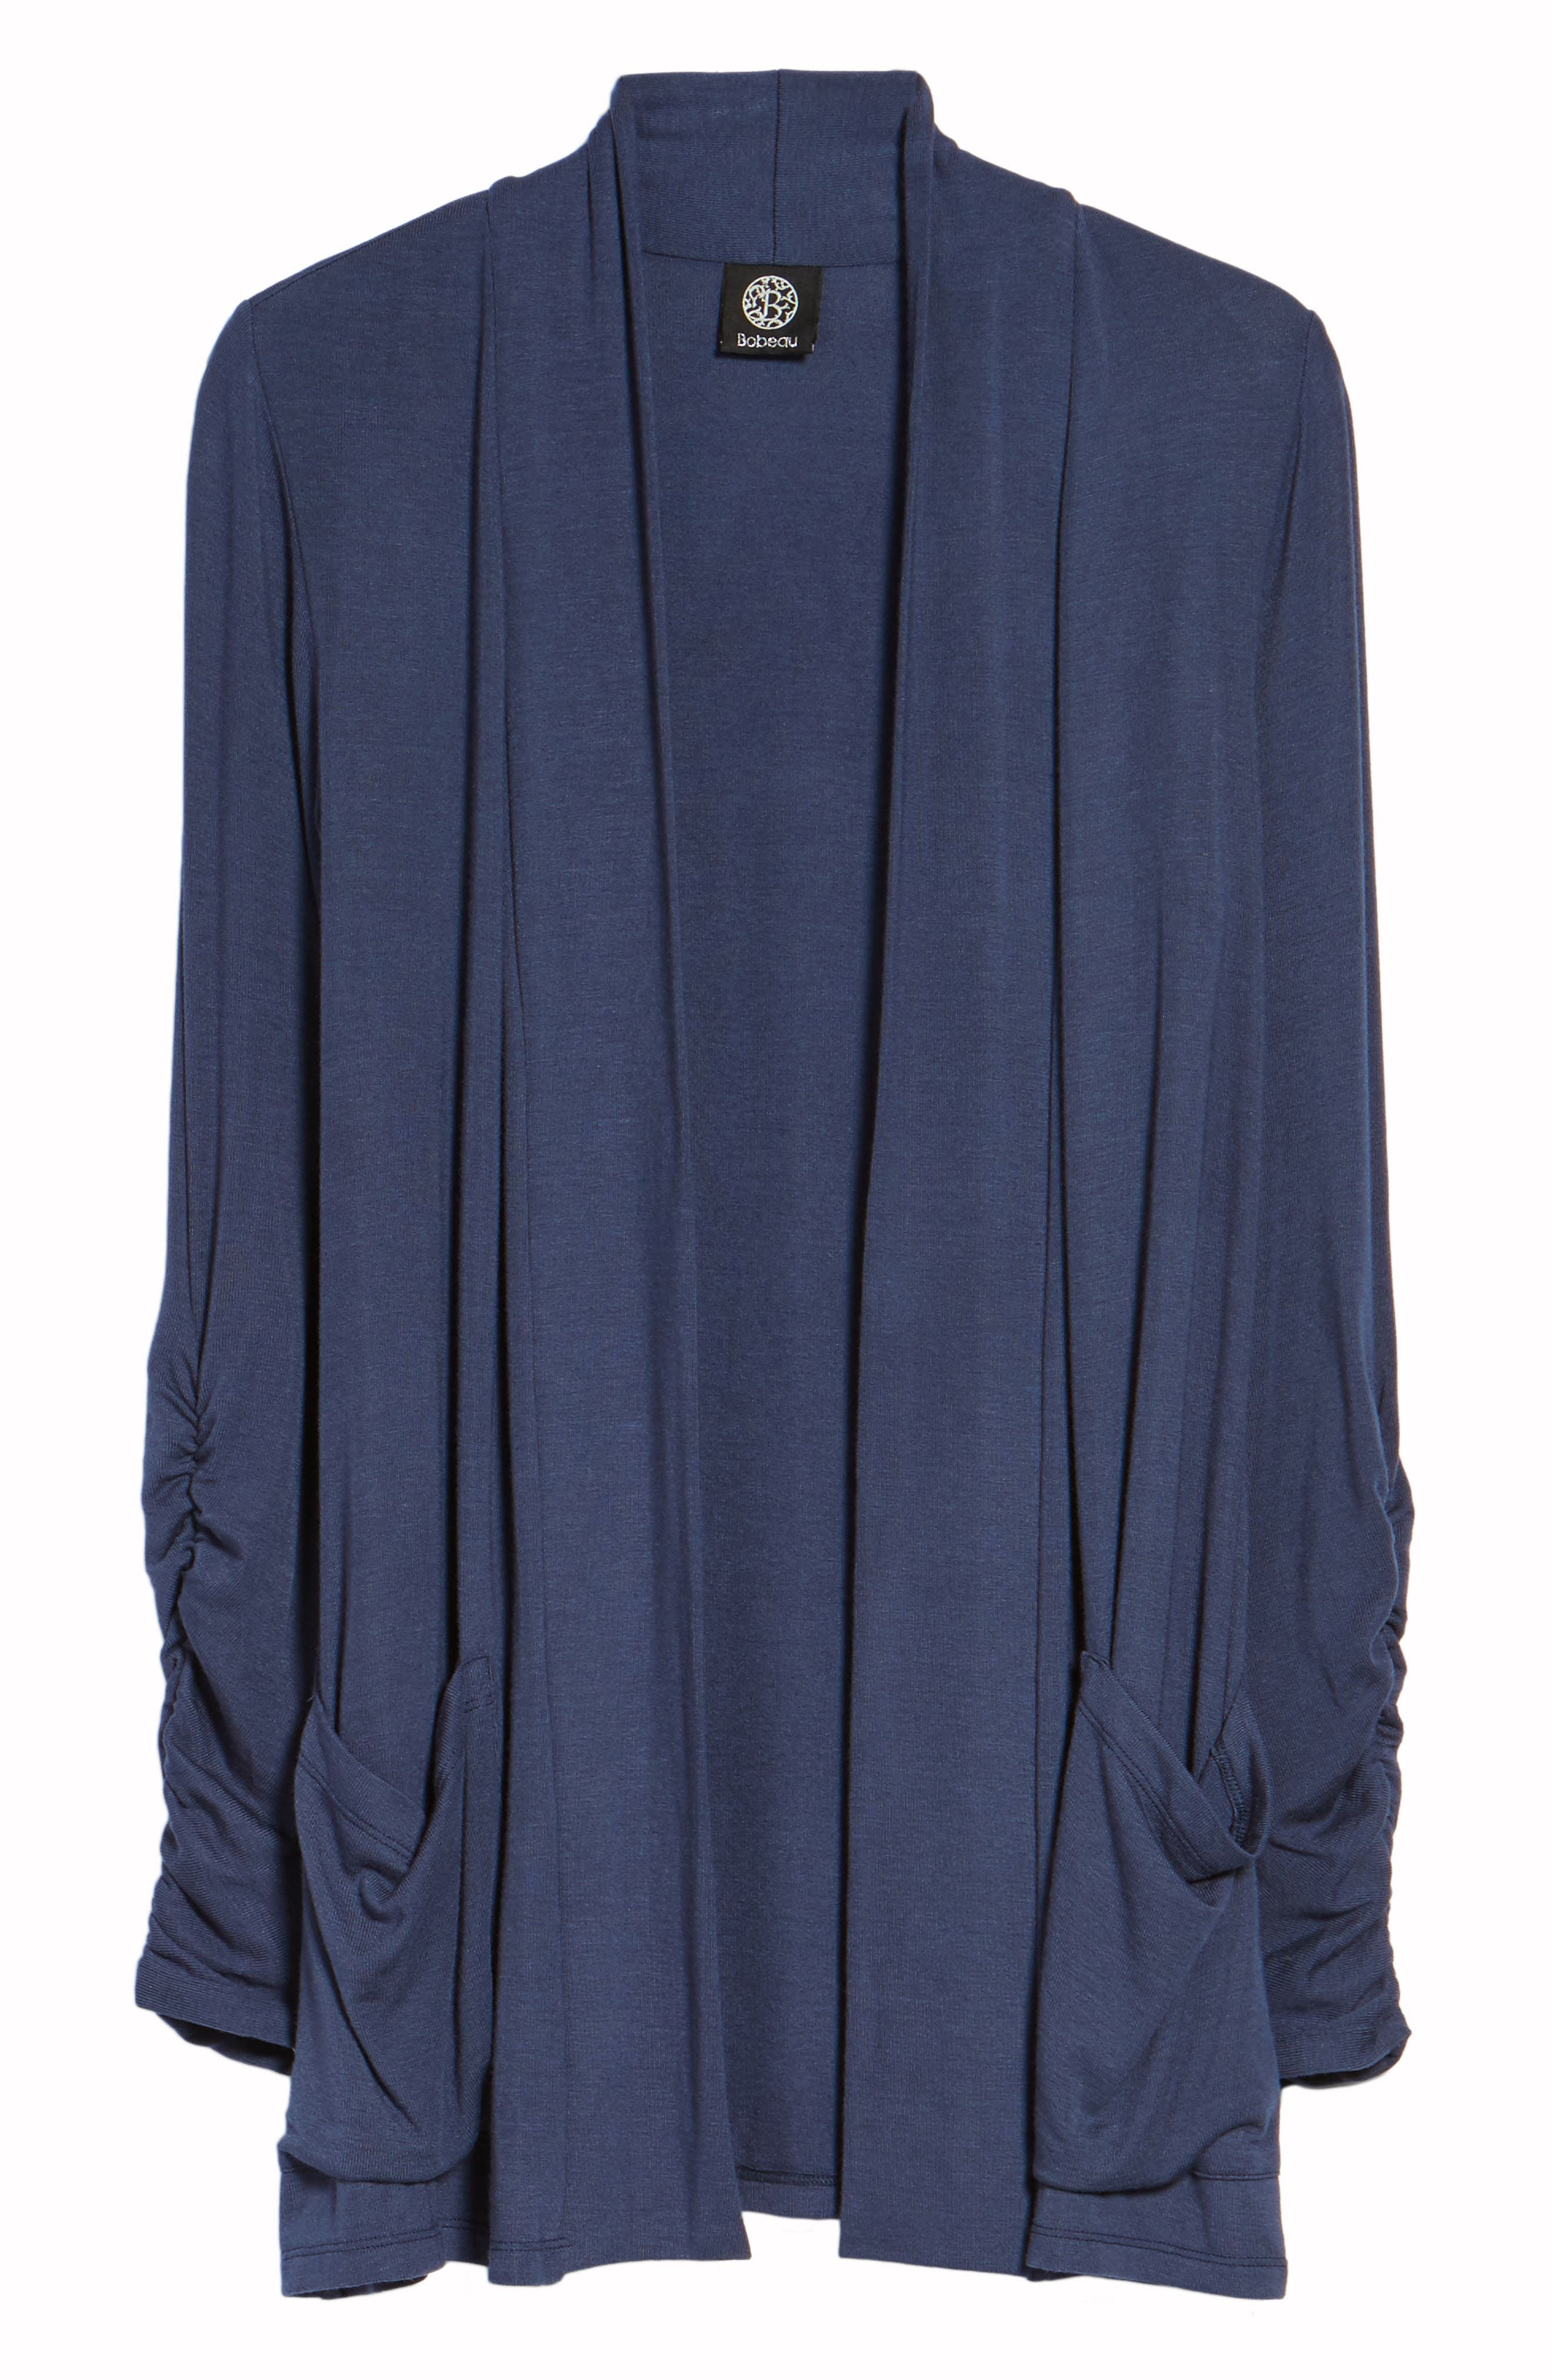 Ruched Sleeve Cardigan,                             Alternate thumbnail 7, color,                             NAVY